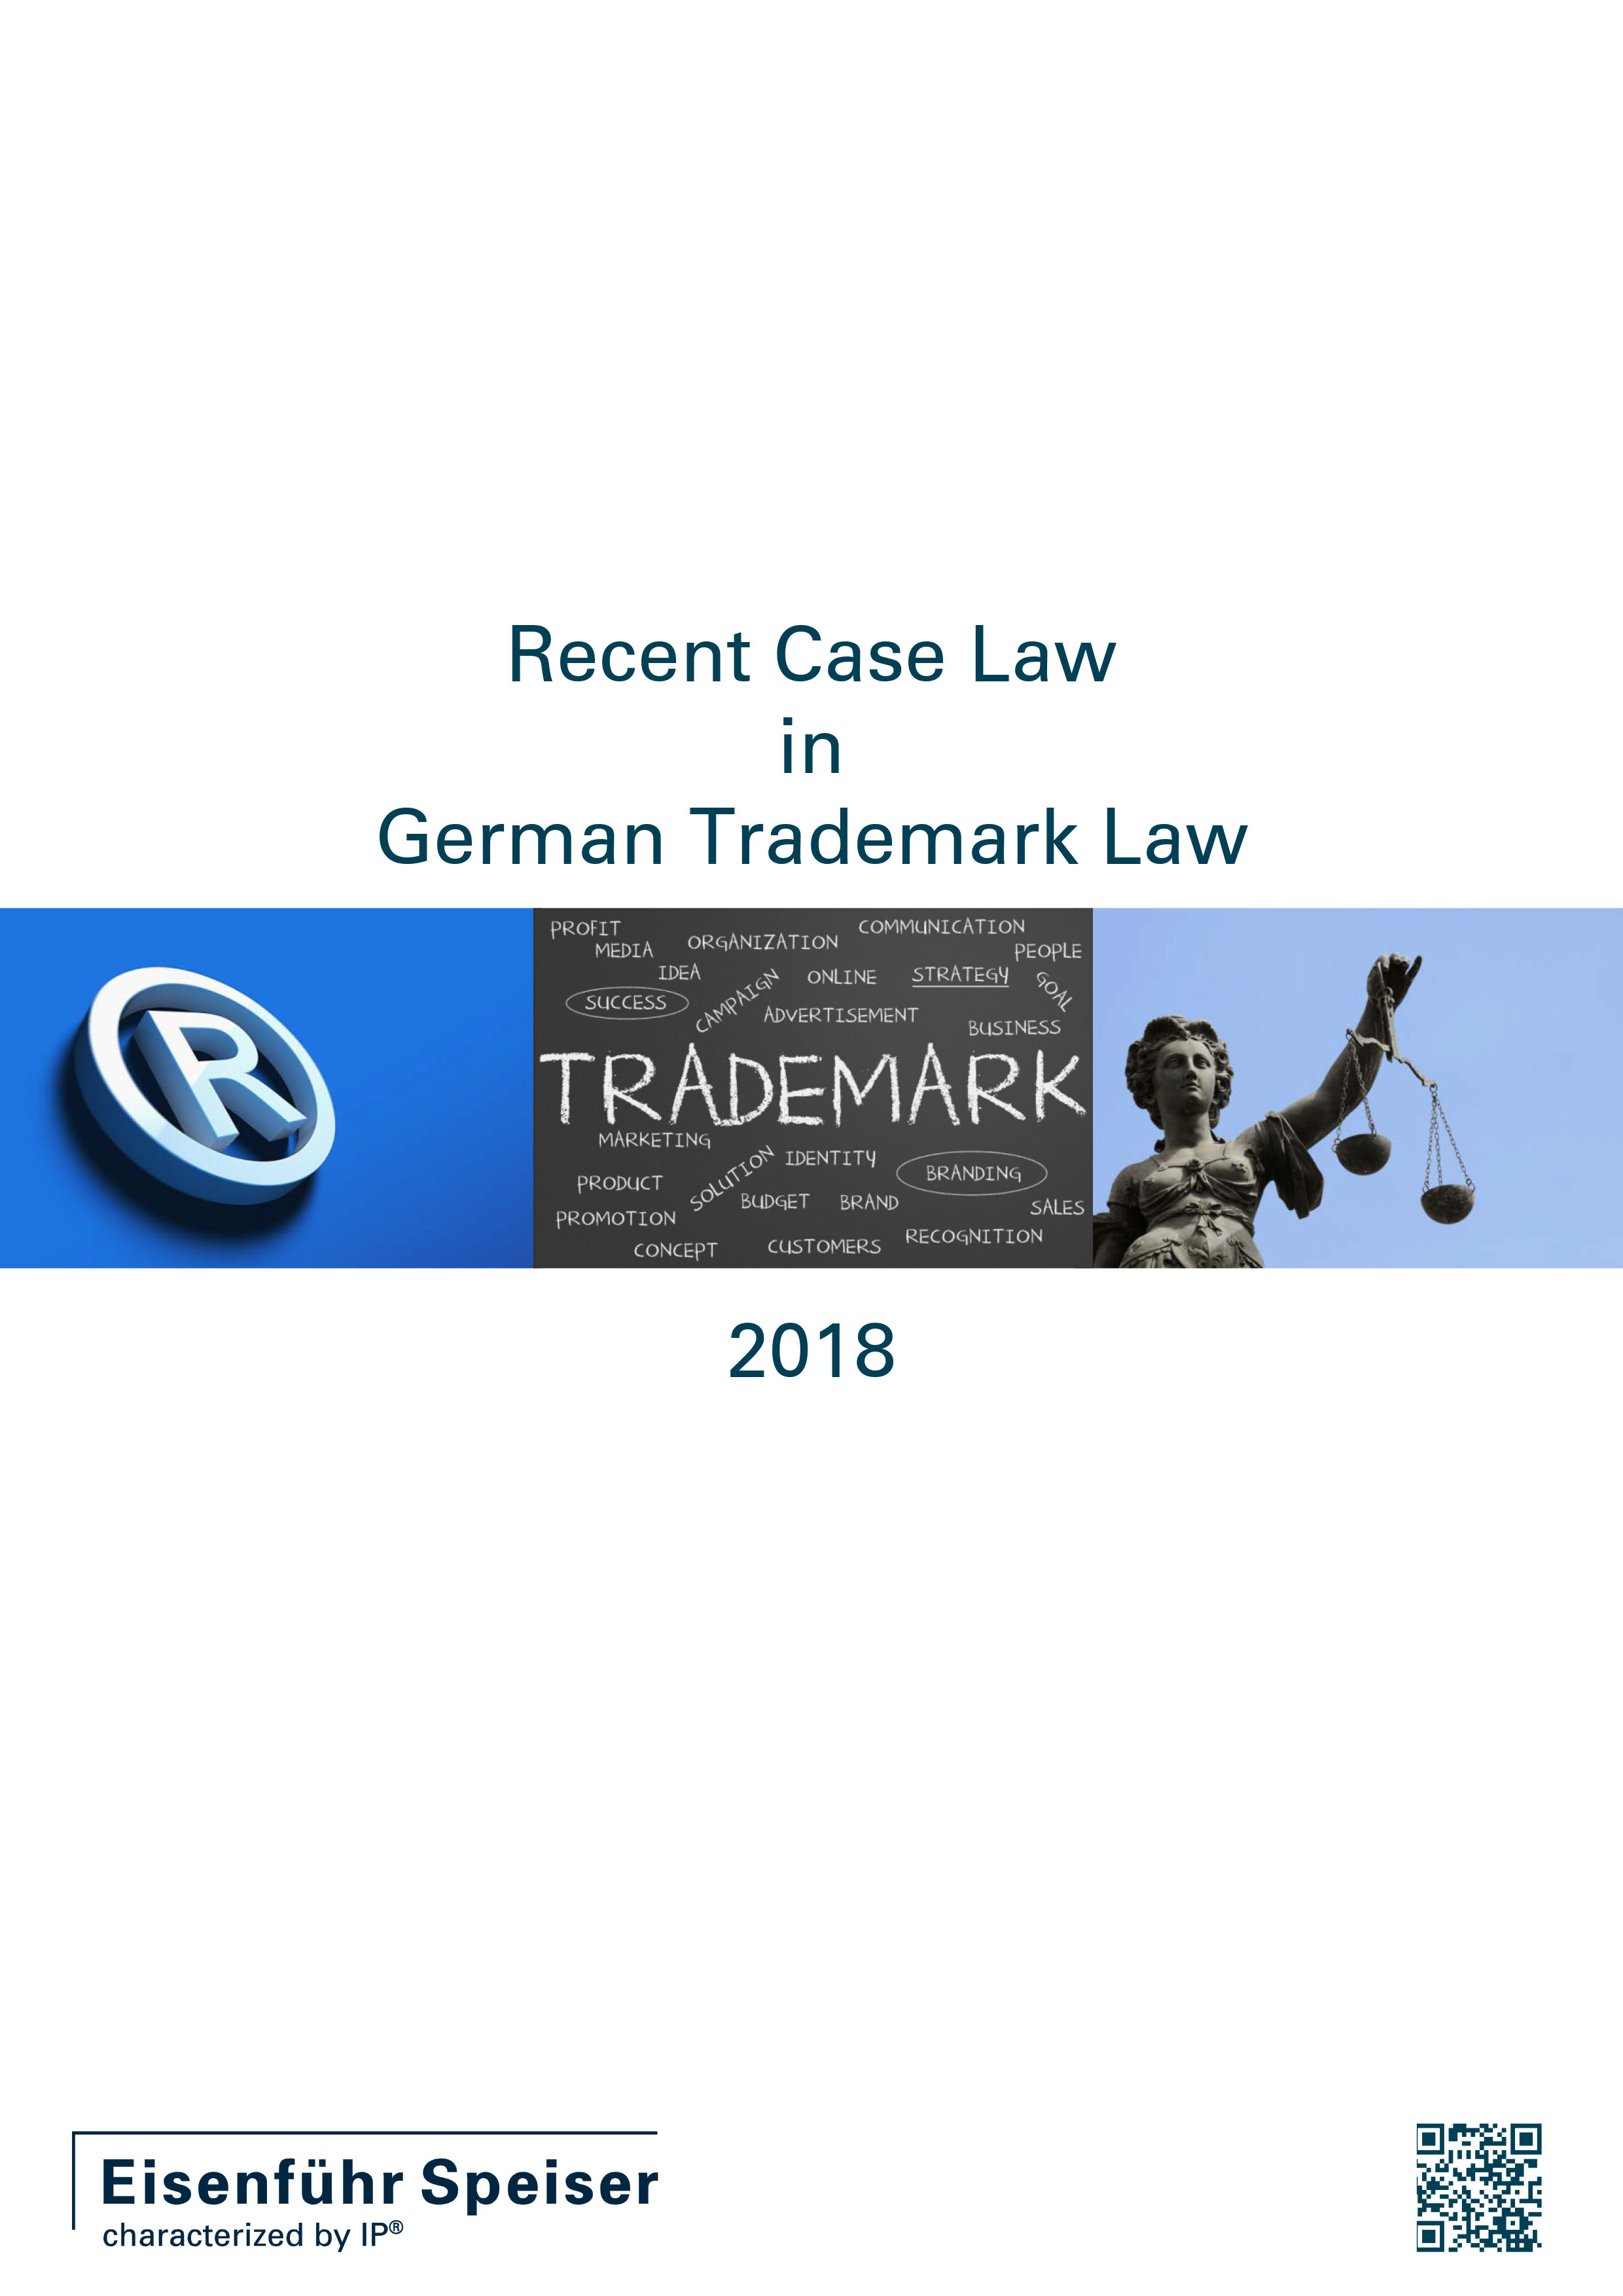 Recent Case Law in German Trademark Law 2018